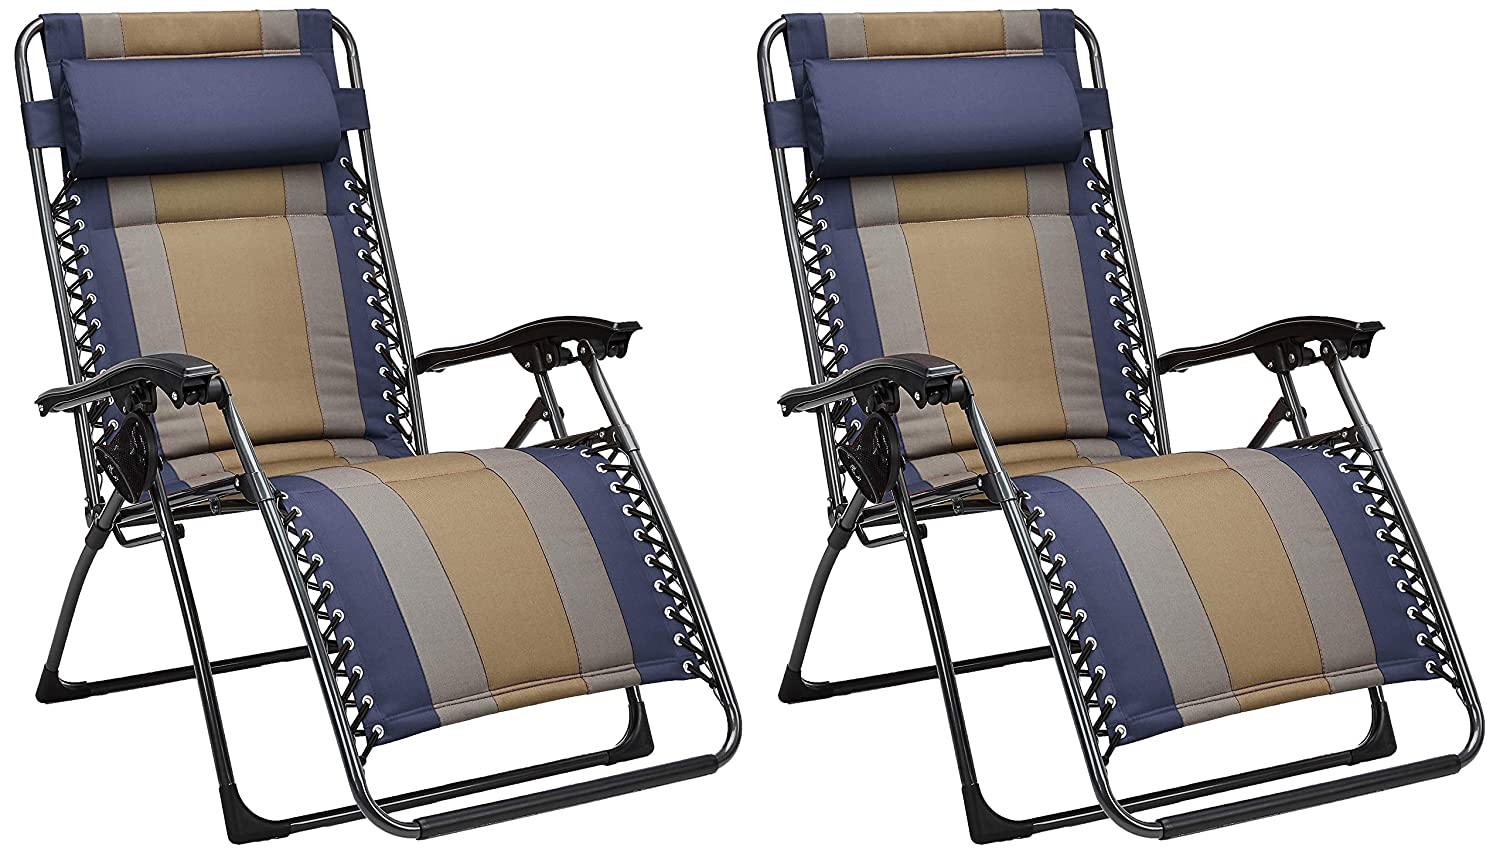 AmazonBasics Padded Zero Gravity Chair- Blue, 2 Pack